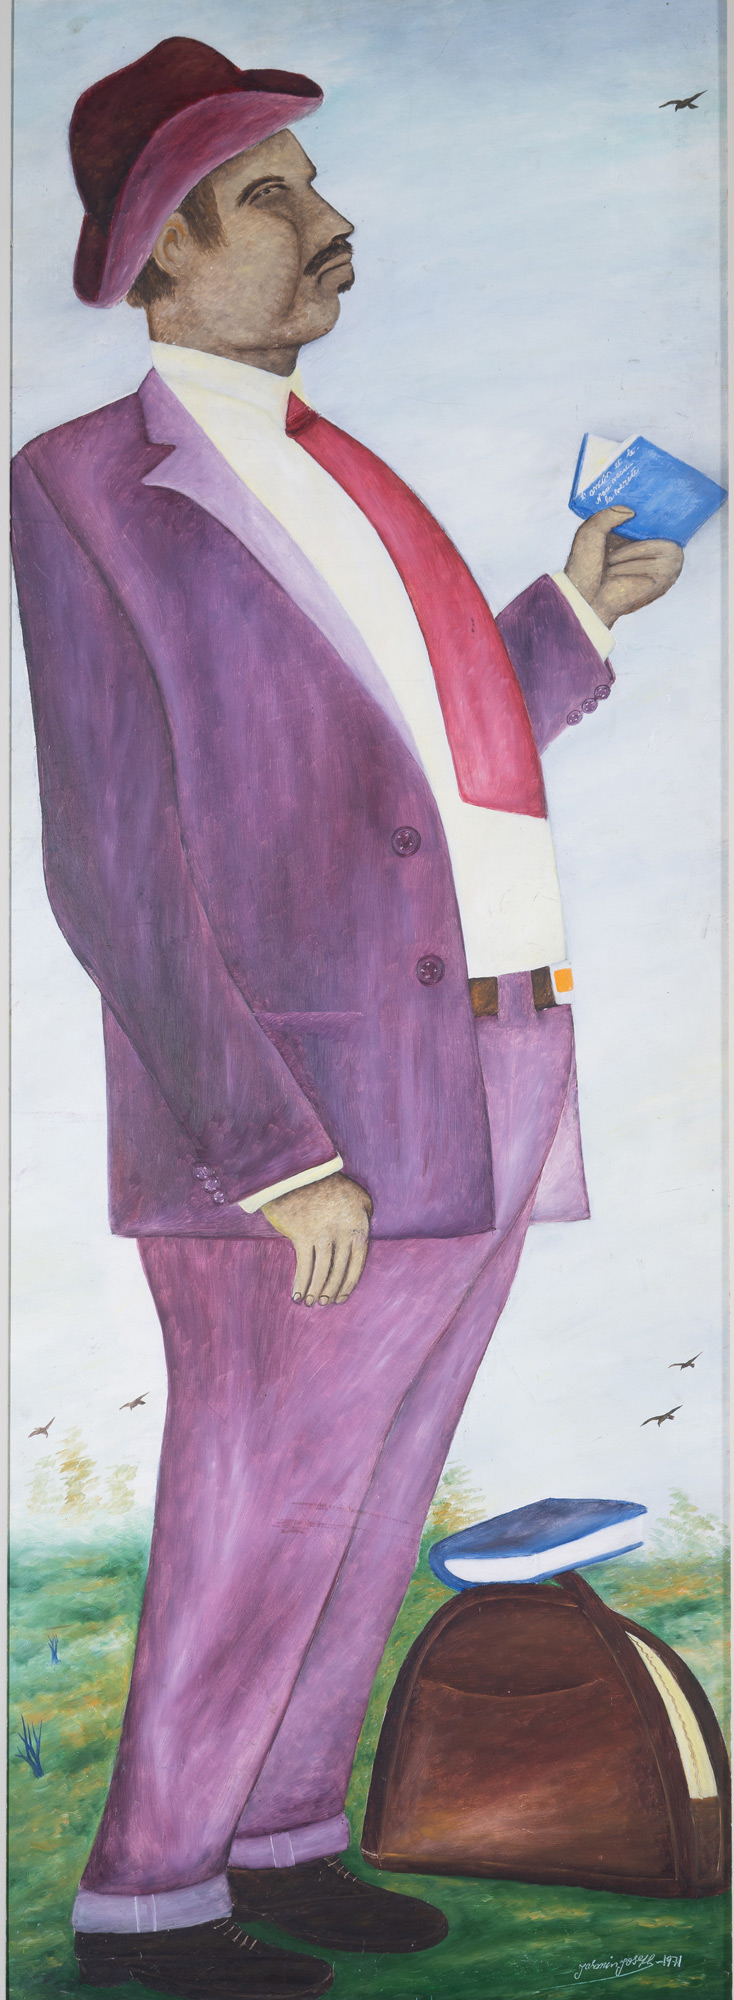 The Poet (Self - Portrait), 1972